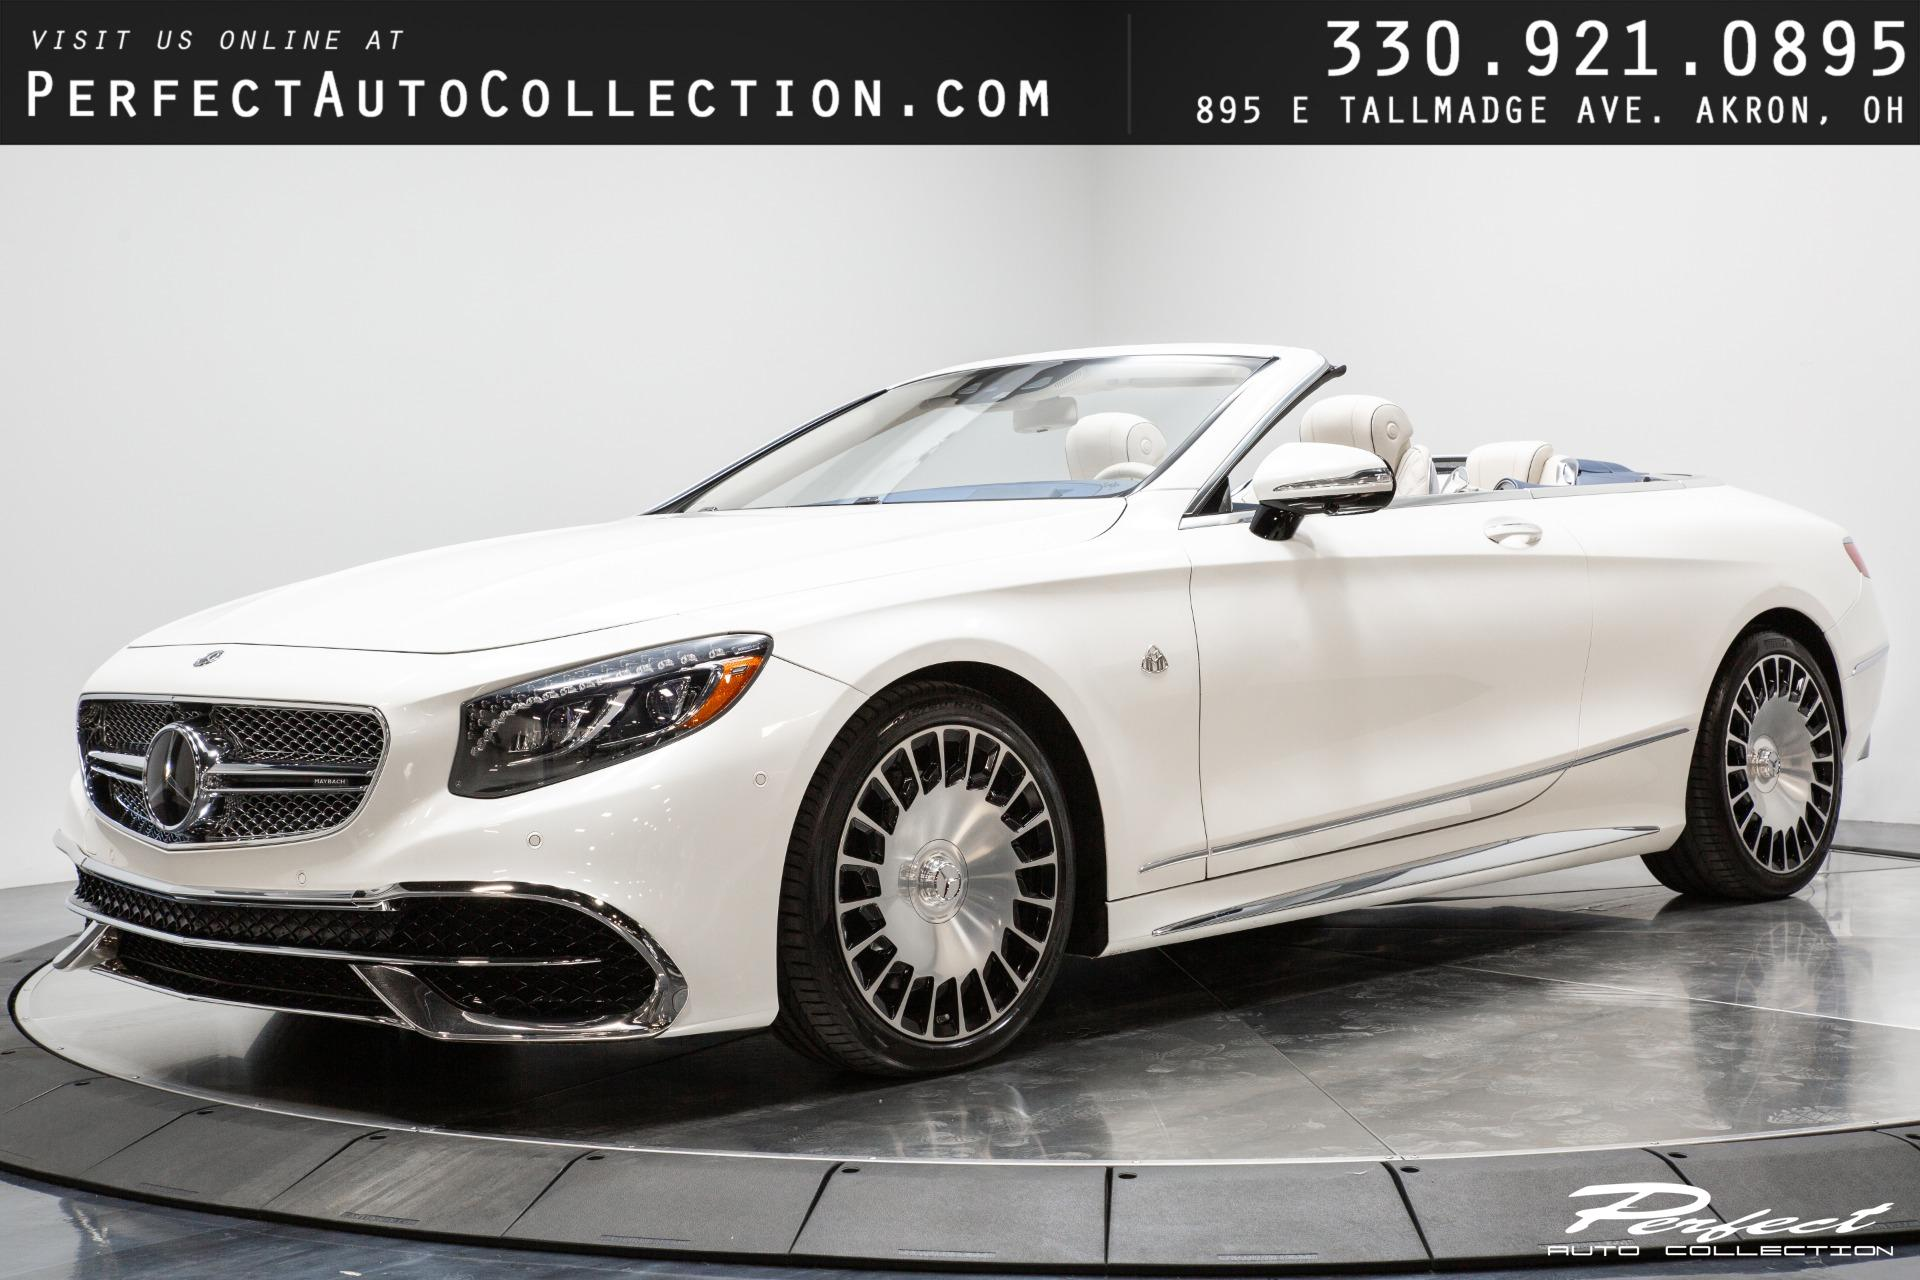 Used 2017 Mercedes-Benz S-Class Maybach S 650 Cabriolet for sale $217,995 at Perfect Auto Collection in Akron OH 44310 1